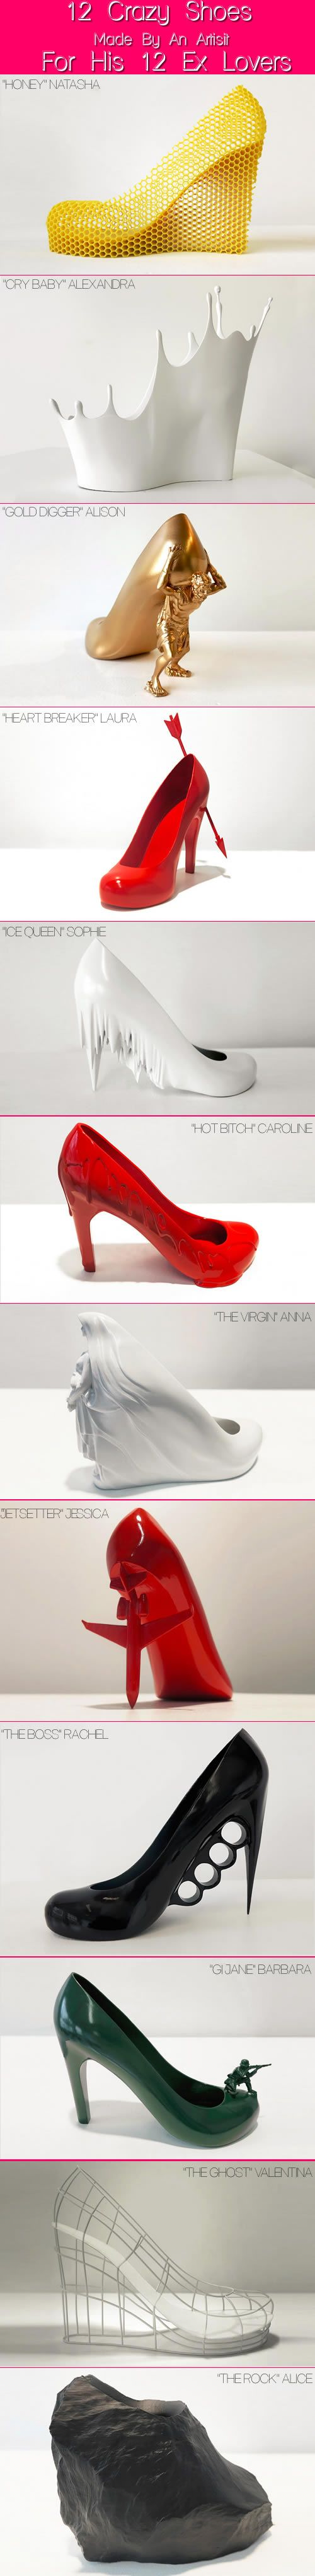 Artist Creates 12 Shoes For 12 Ex Lovers. Just imagine the back-stories!